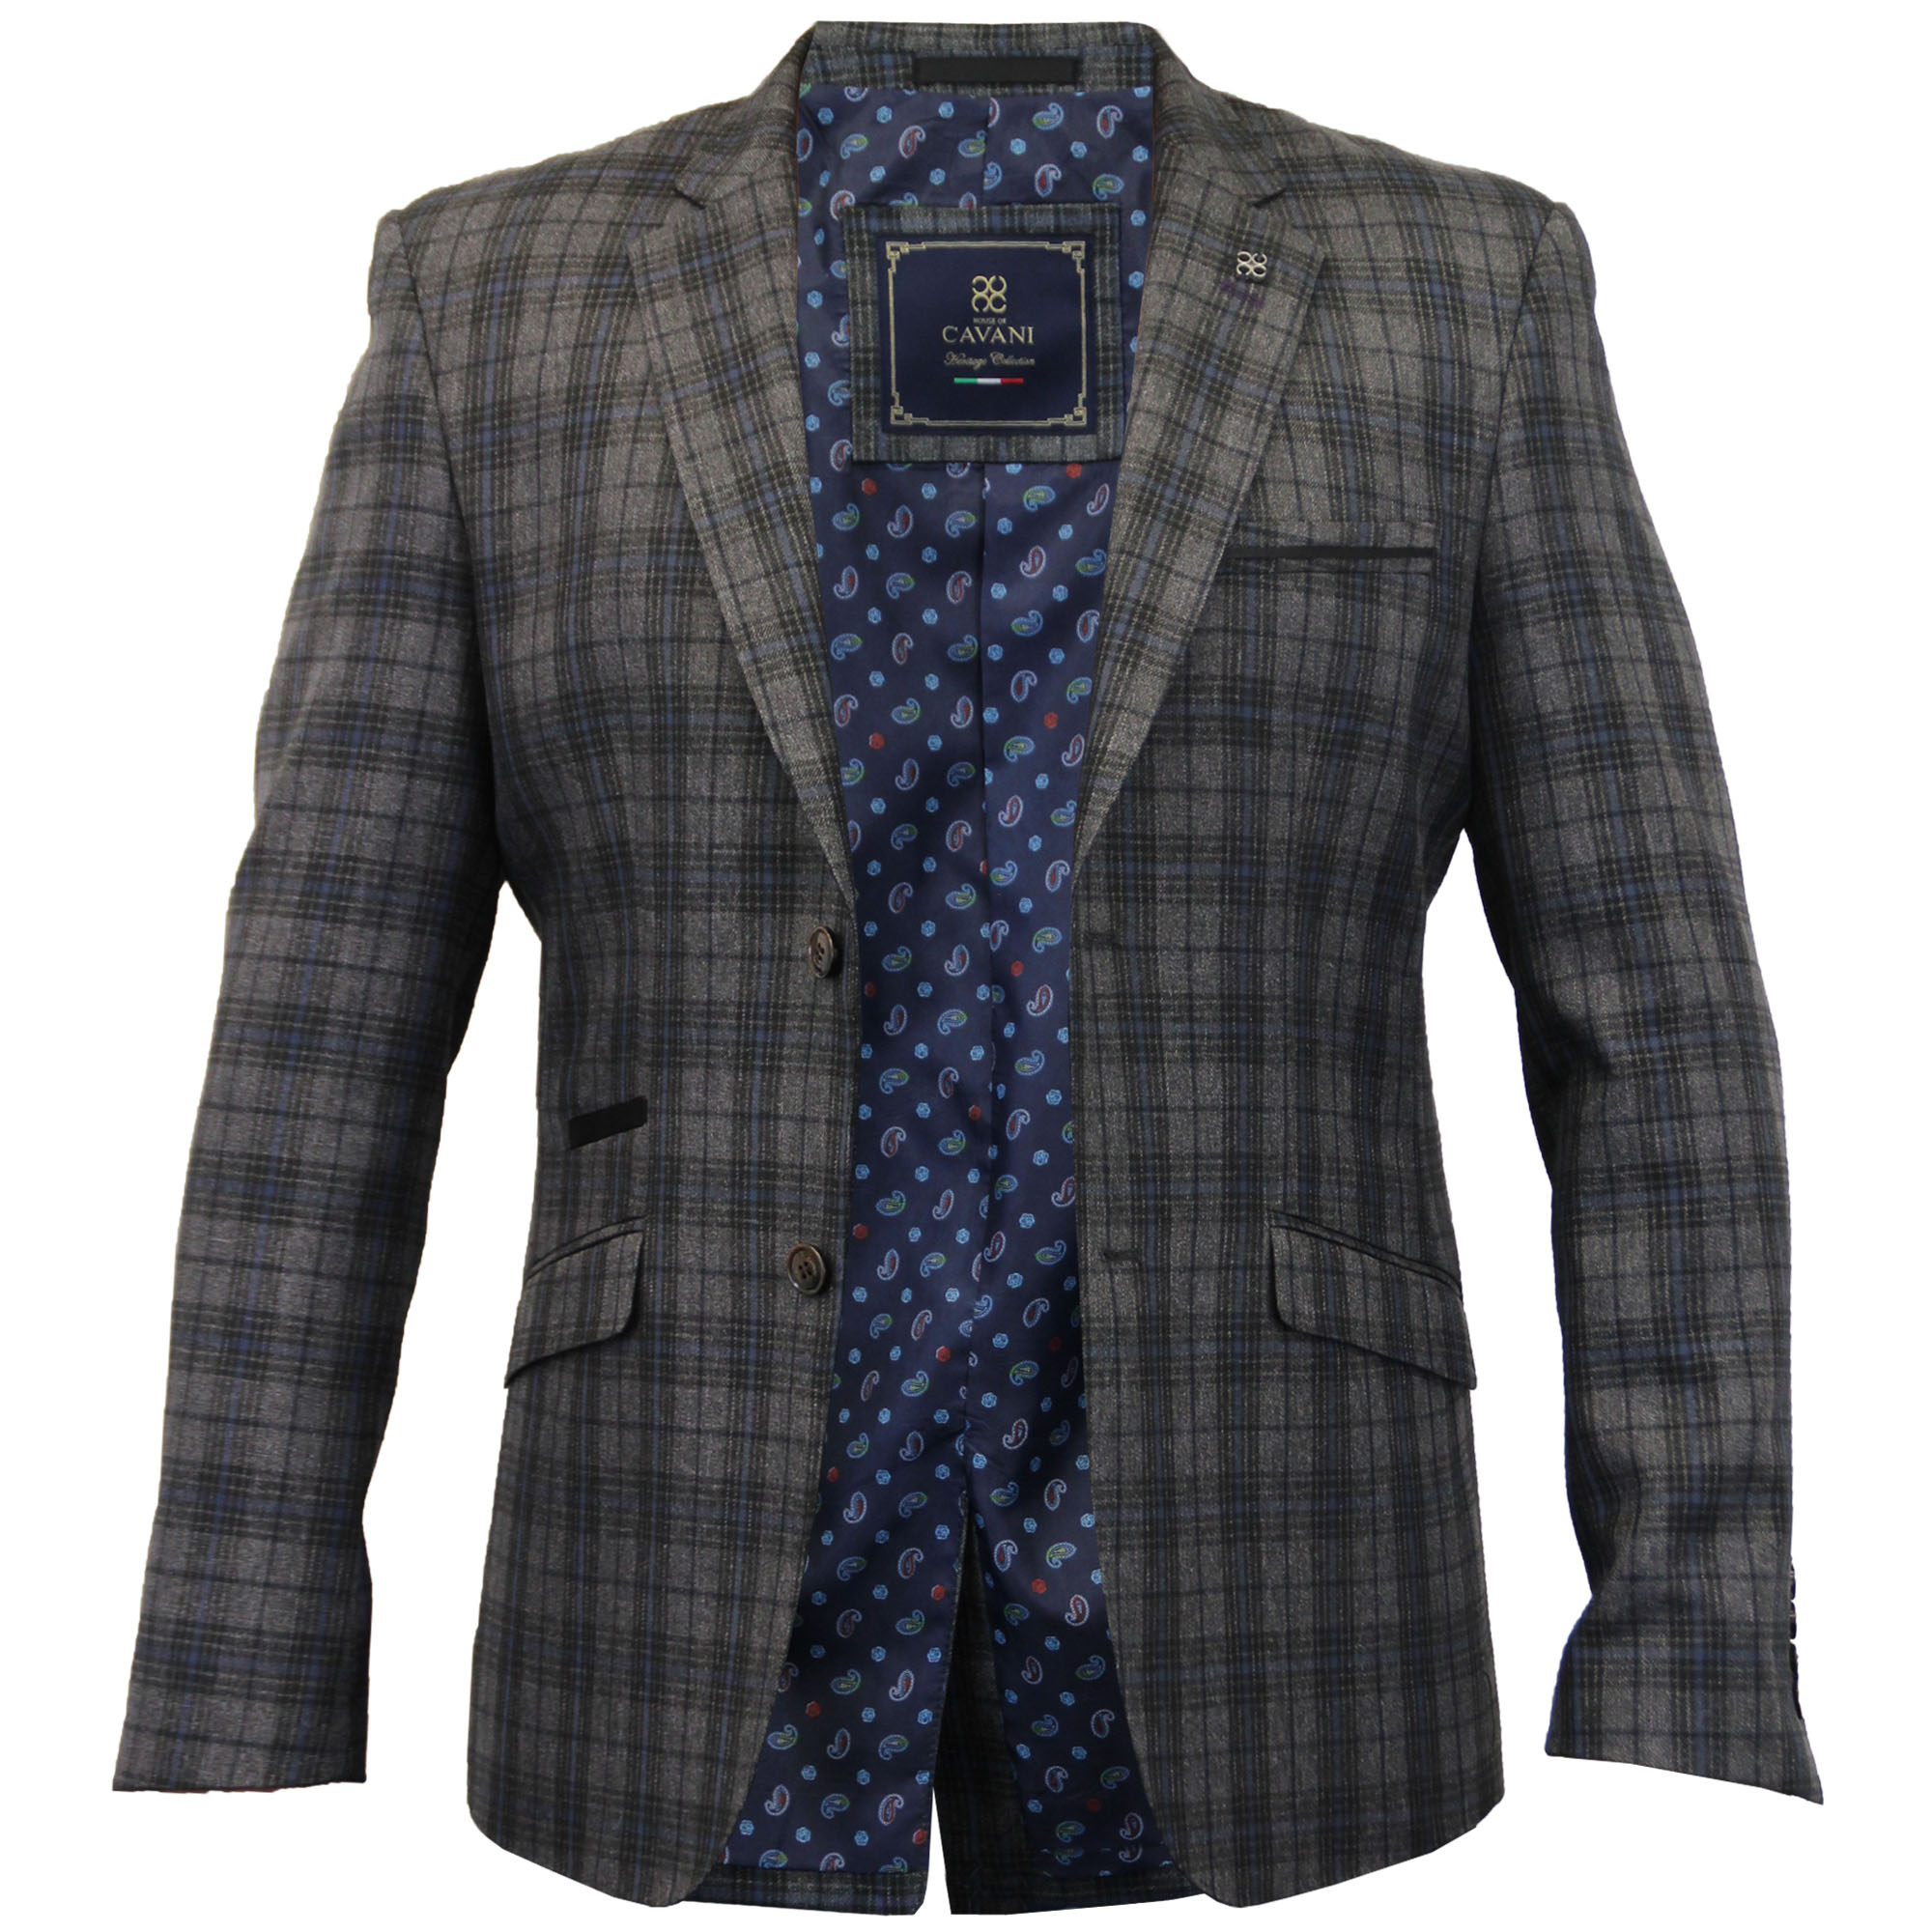 Mens Blazer Cavani Coat Dinner Suit Slim Fit Jacket Tartan